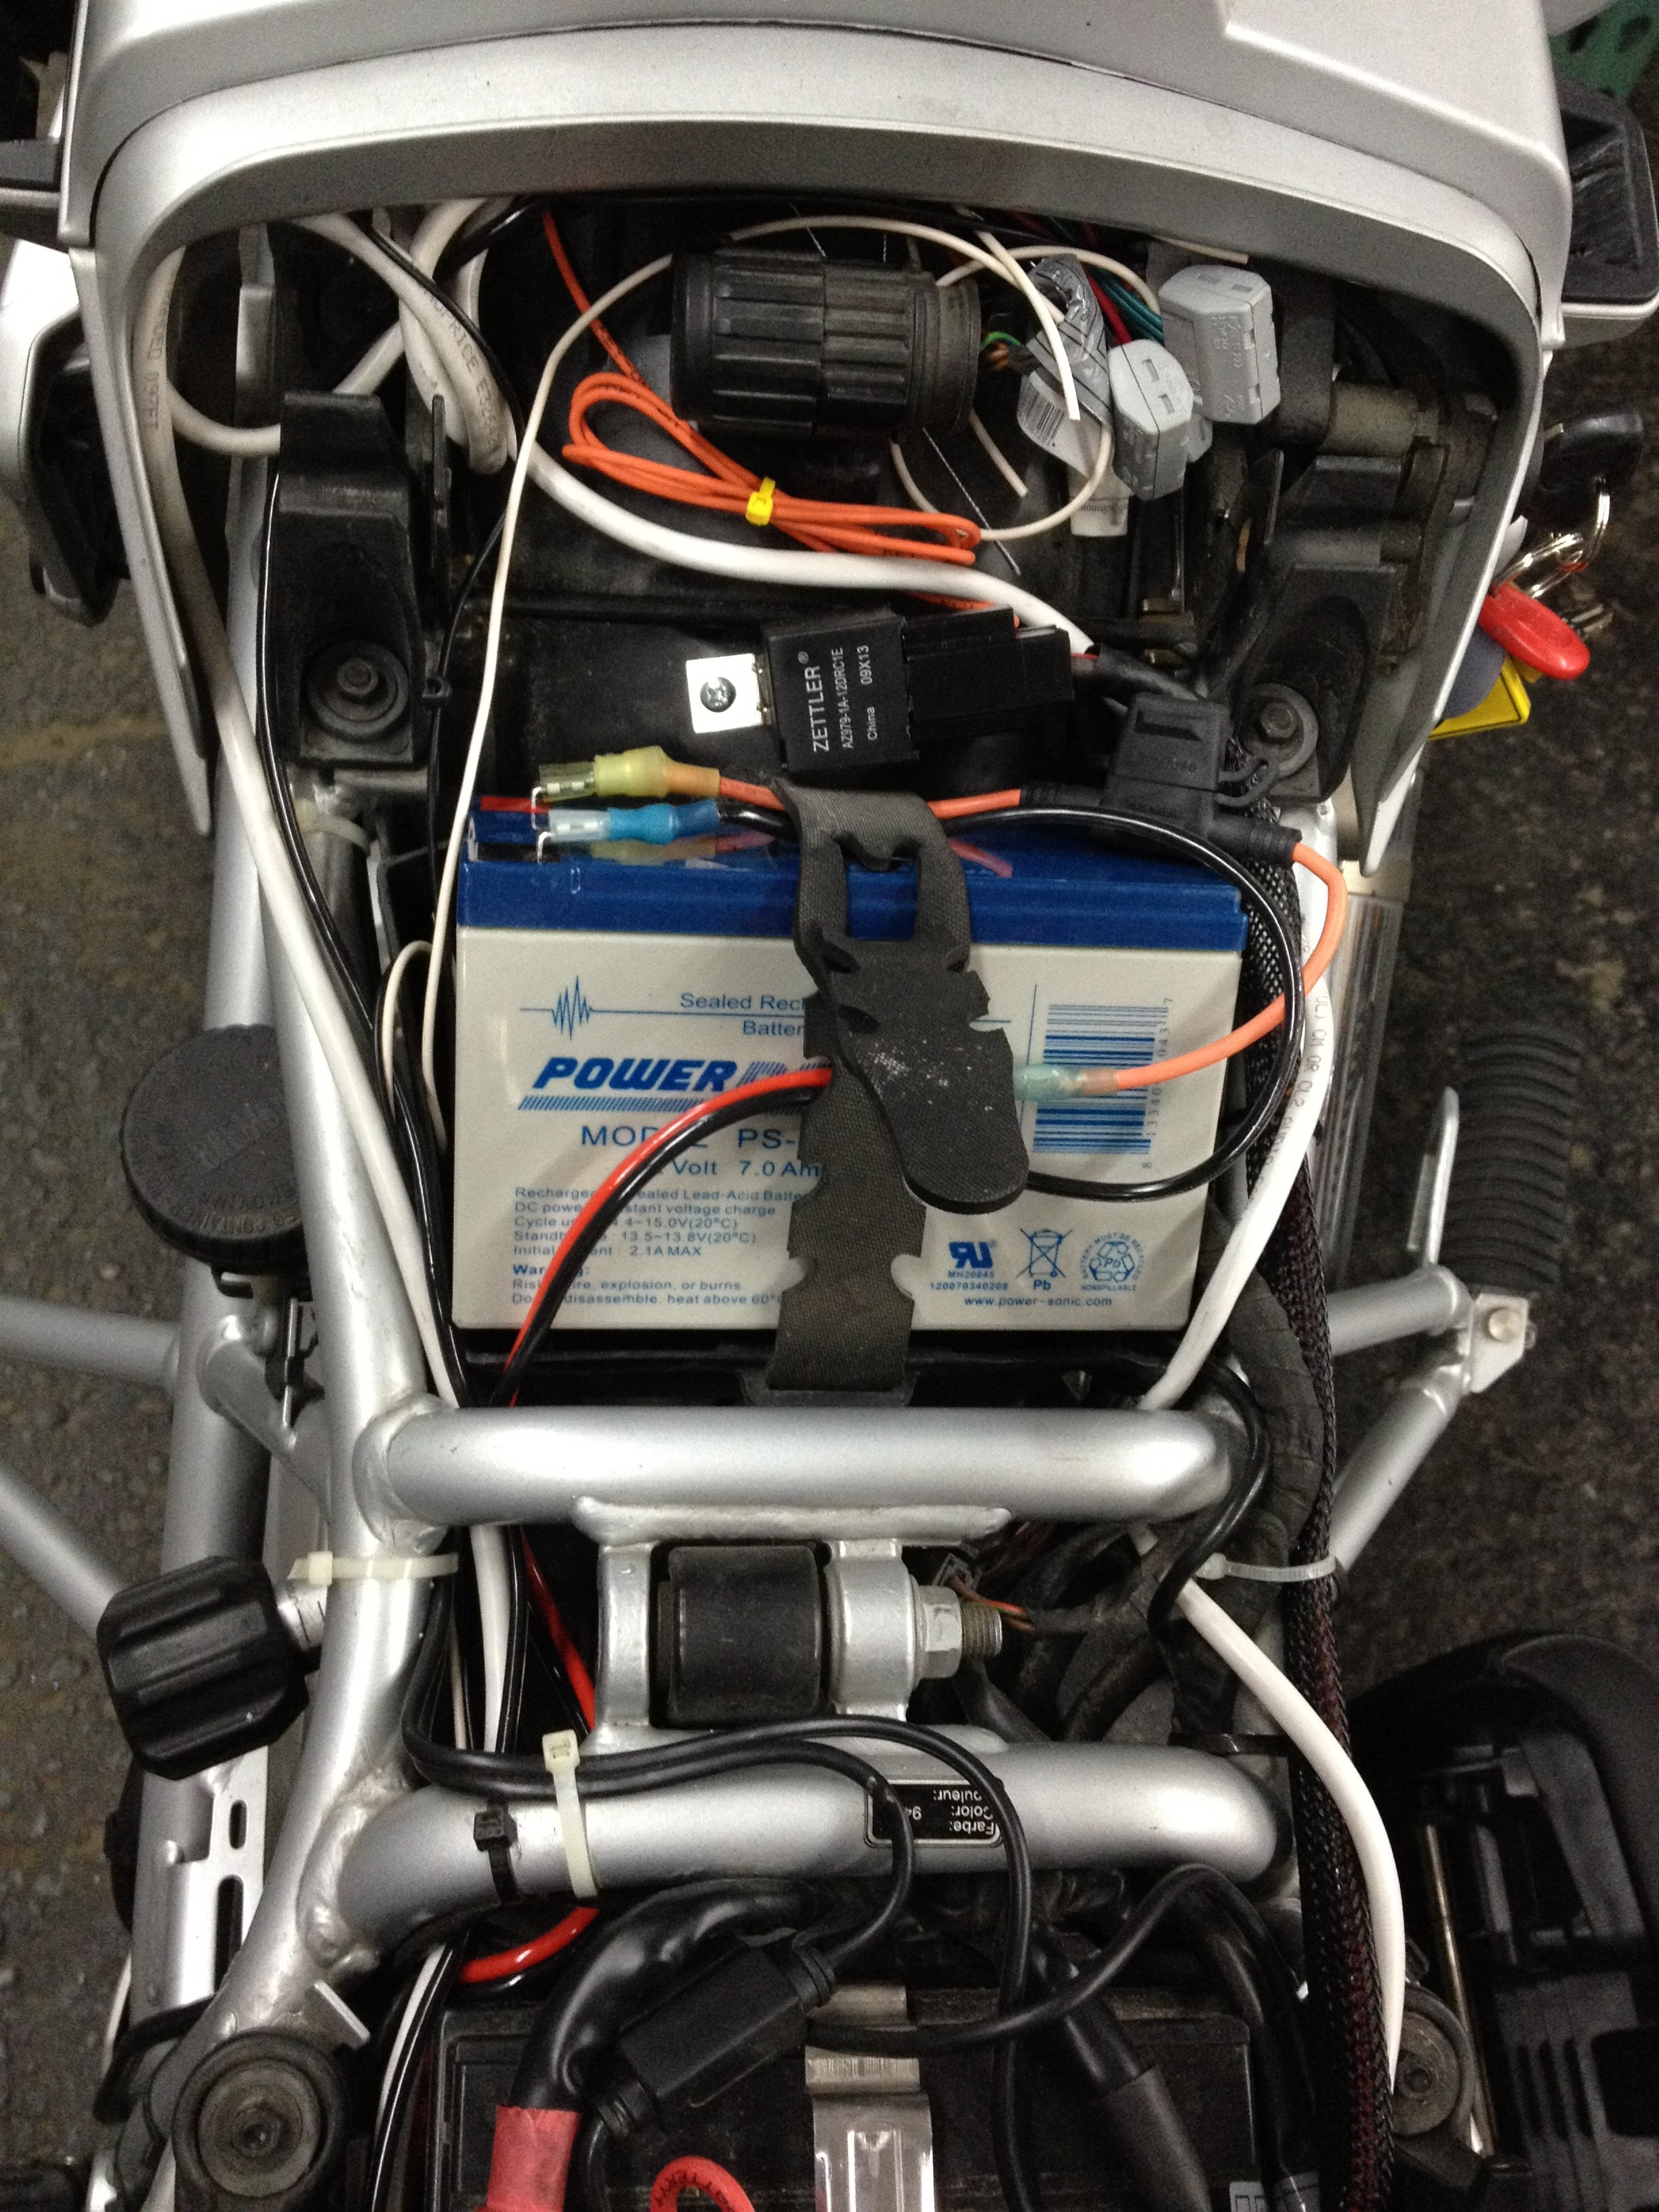 TE_1459] Bmw Gs 800 Fuse Box Free Diagram   Bmw Gs 1200 Fuse Box Location      Oxyt Unec Wned Inrebe Mohammedshrine Librar Wiring 101